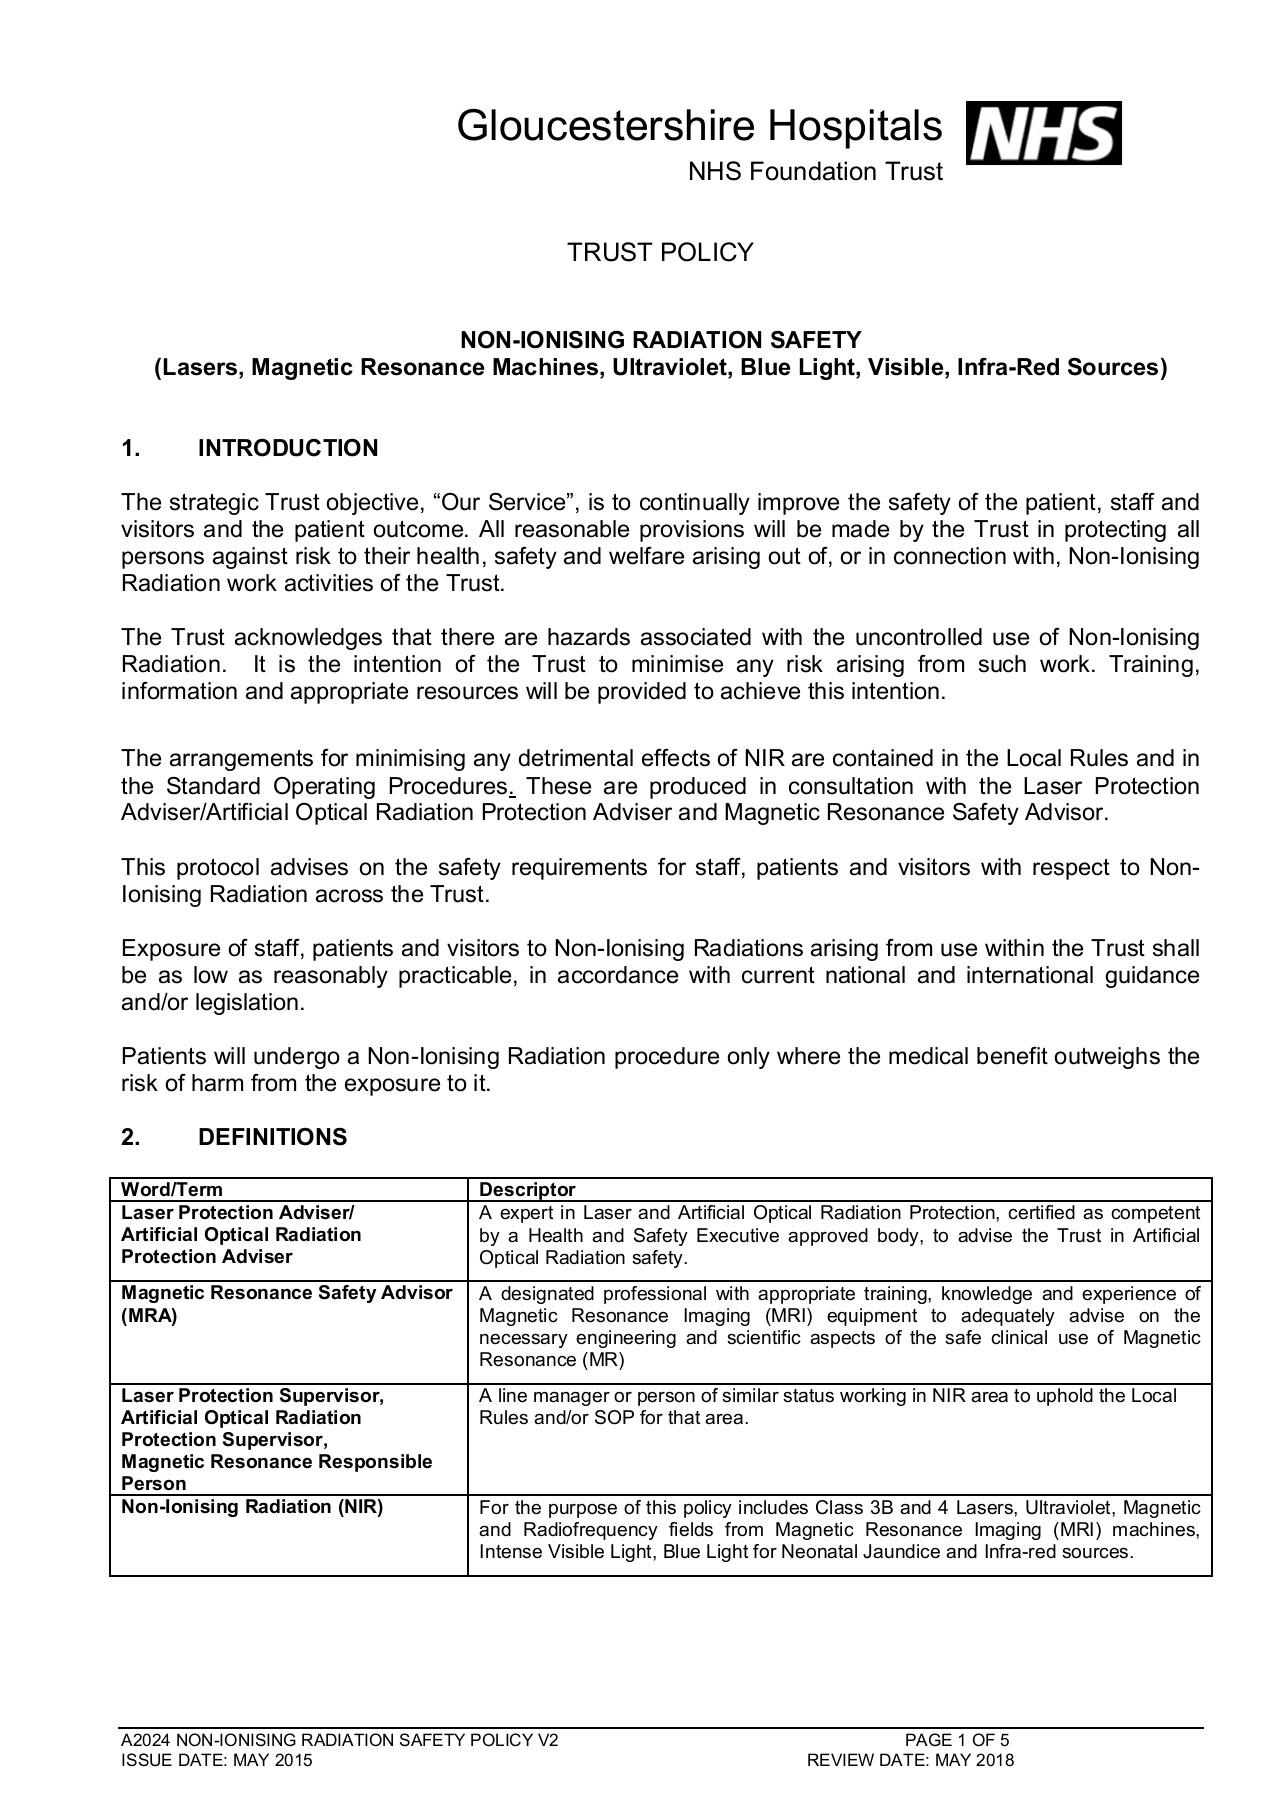 NON-IONISING RADIATION SAFETY 1  INTRODUCTION Pages 1 - 5